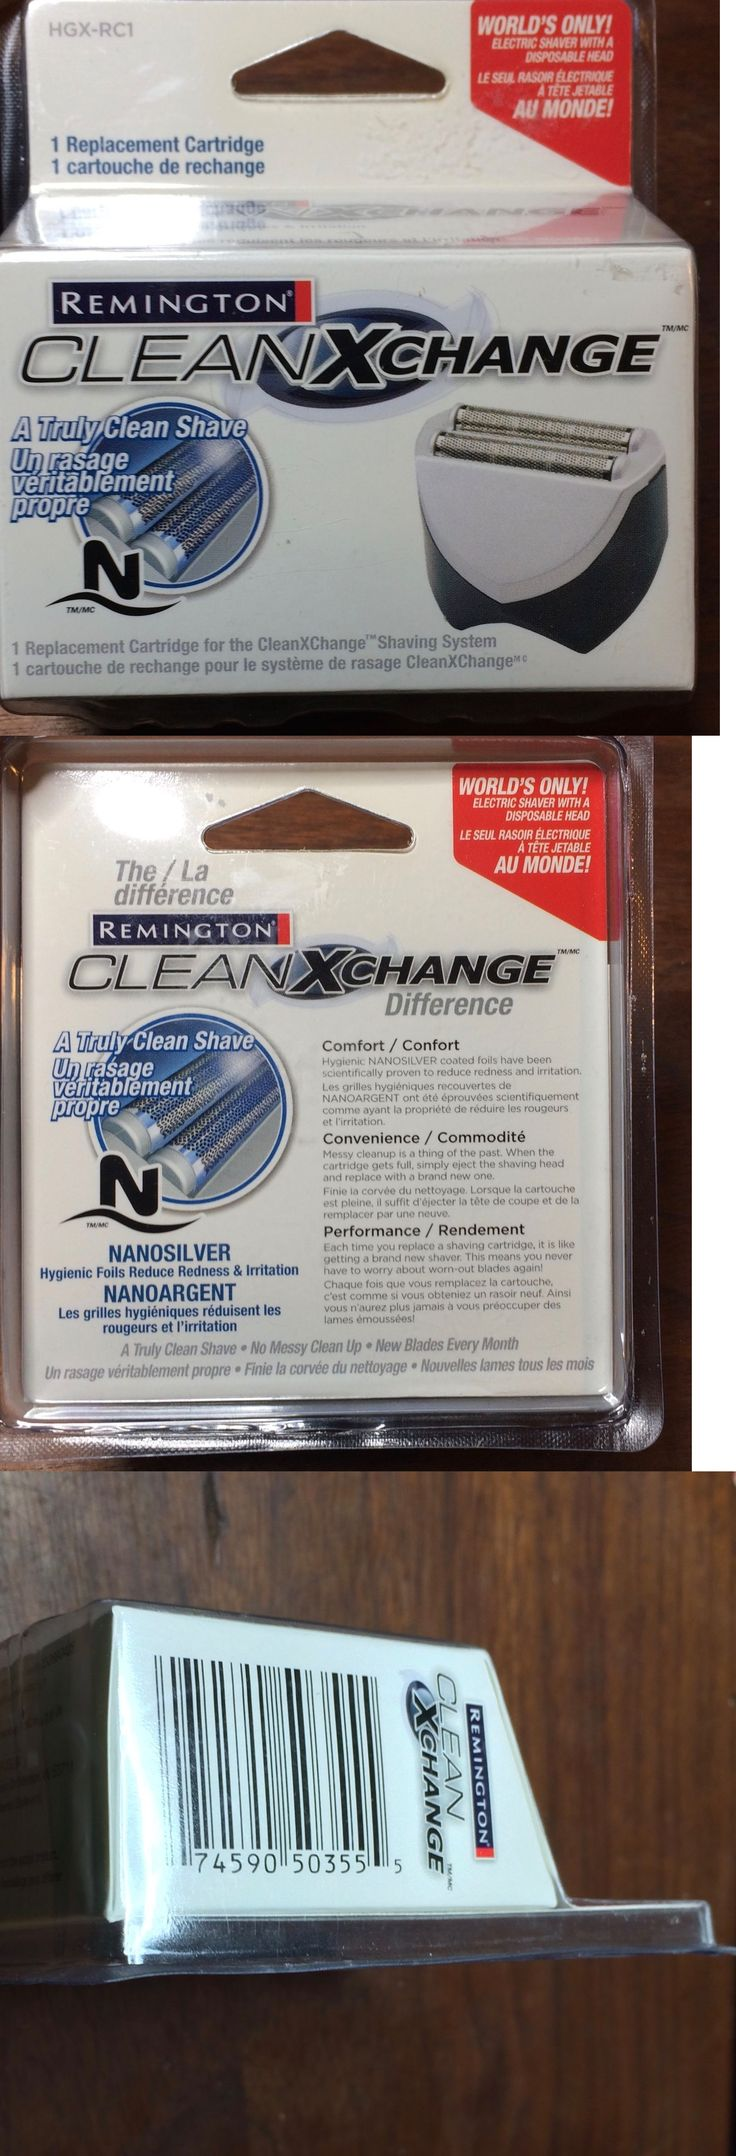 Shaver Parts and Accessories: Remington Clean Xchange Hgx-Rc1 Lot Of 3 Replacement Head Cartridges New Sealed -> BUY IT NOW ONLY: $36 on eBay!